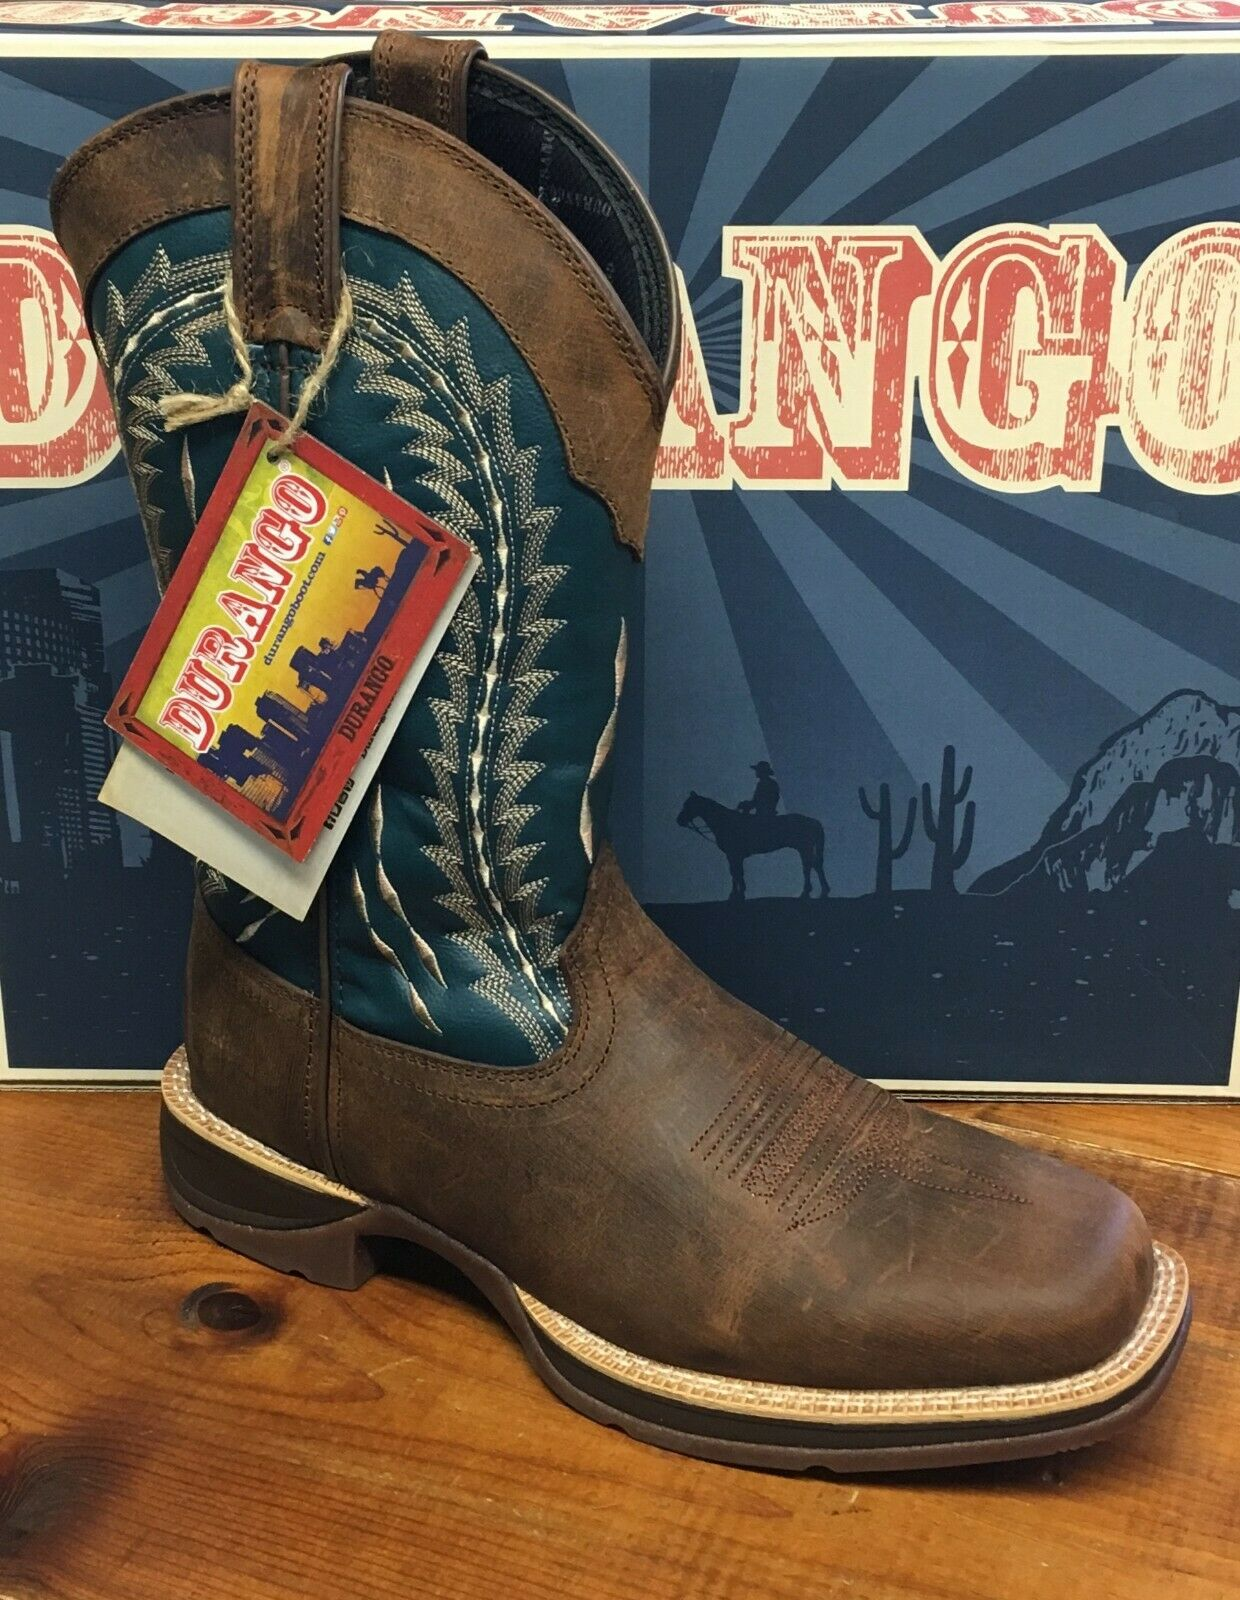 NEW Mens Size 11 Wide Durango Rebel Cowboy Boots Style DDB0093 Square Toe Brown